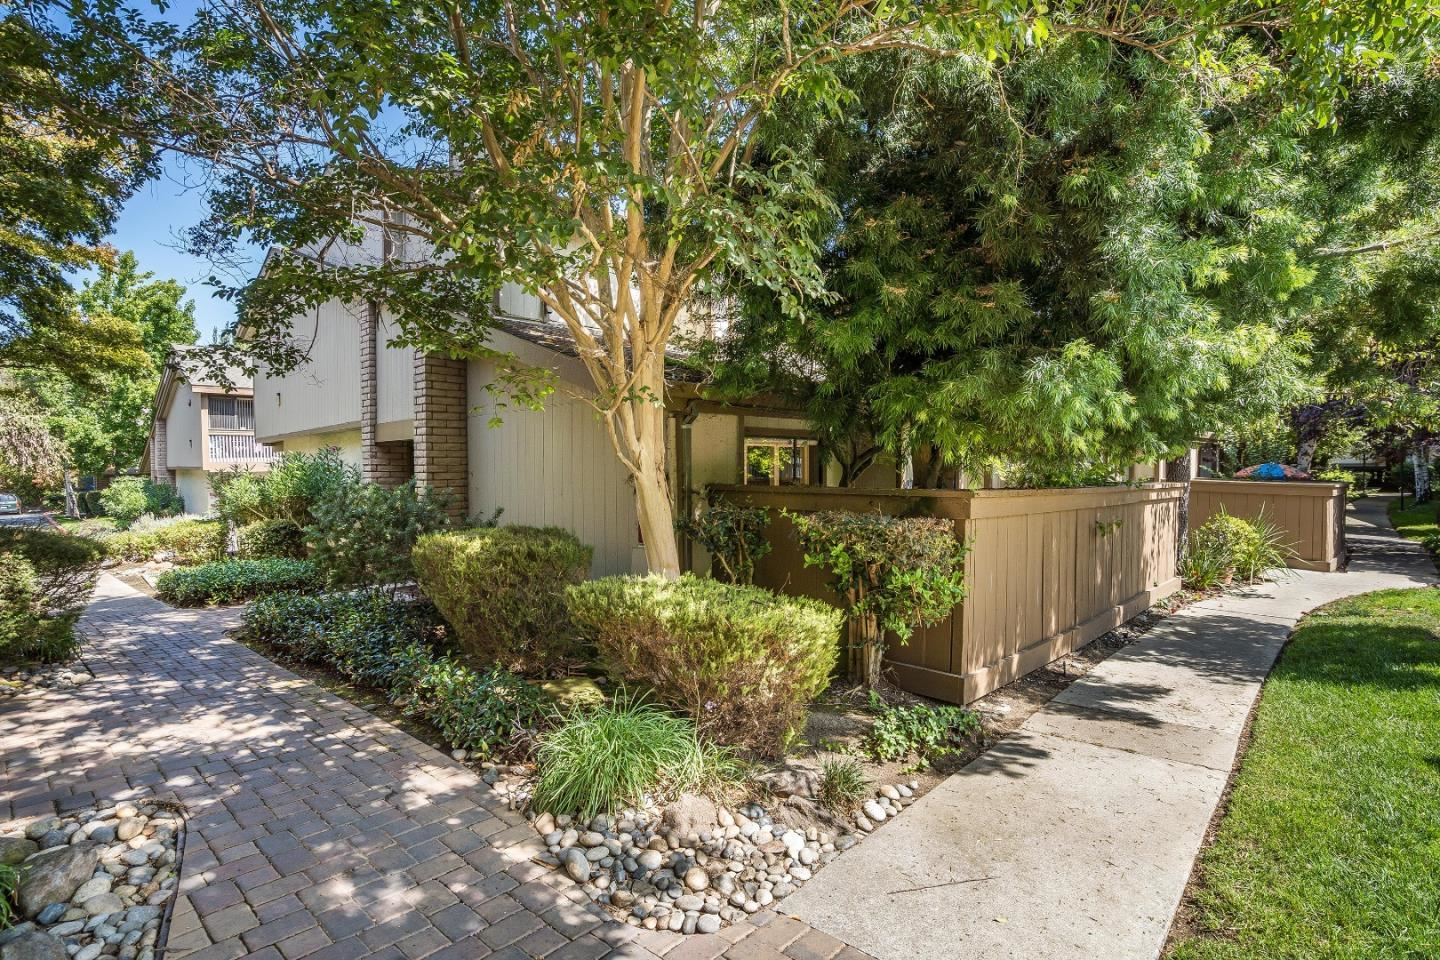 Photo for 49 Showers DR F433 #F433, MOUNTAIN VIEW, CA 94040 (MLS # ML81811048)